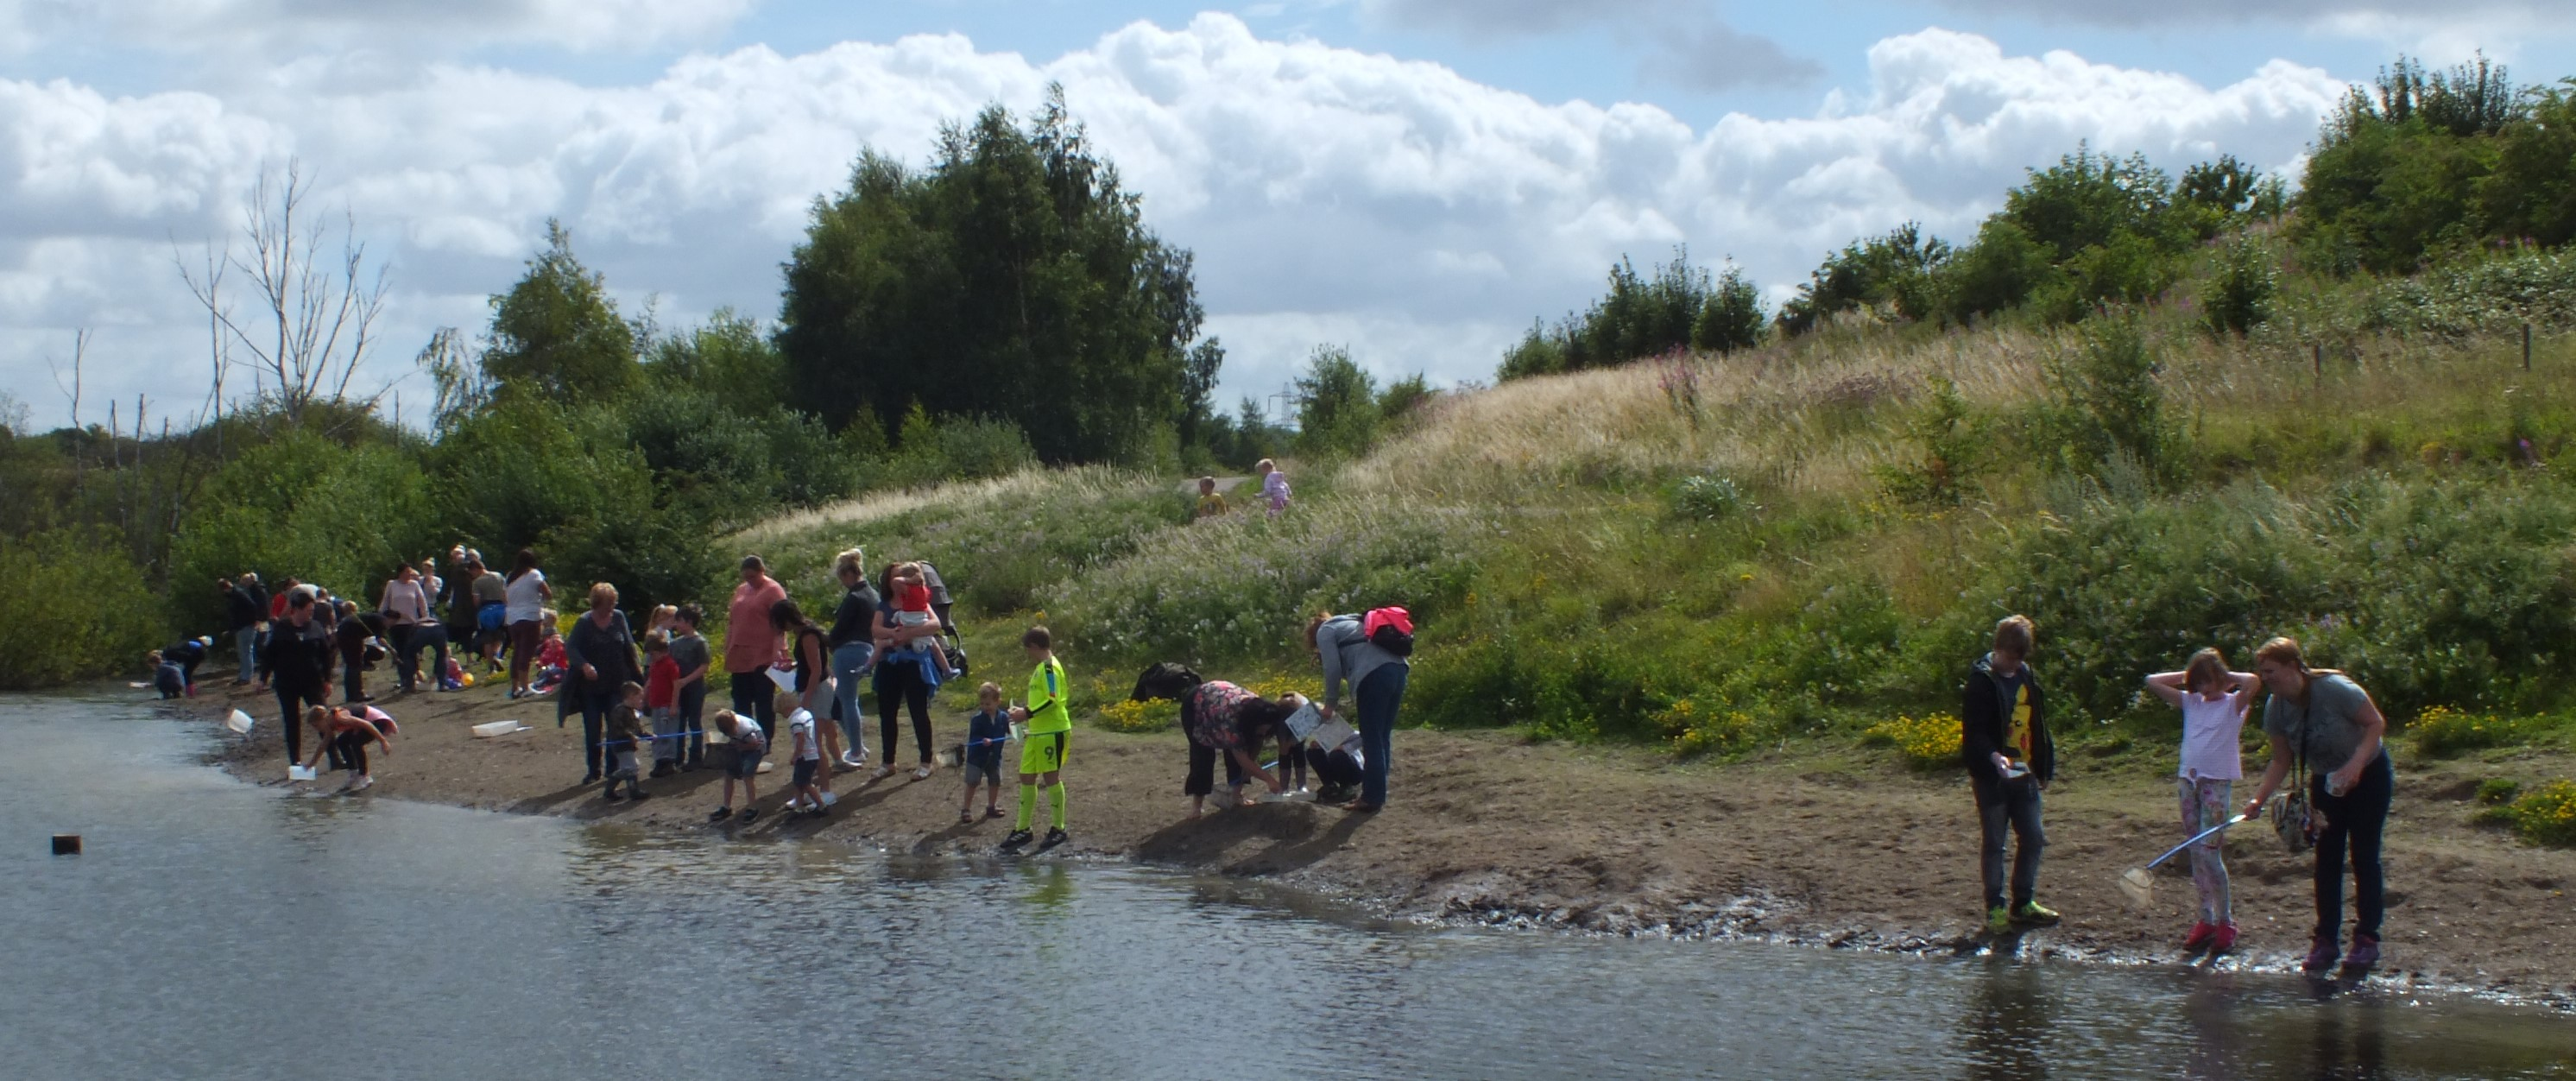 Pond dipping at Rabbit Ings Country Park